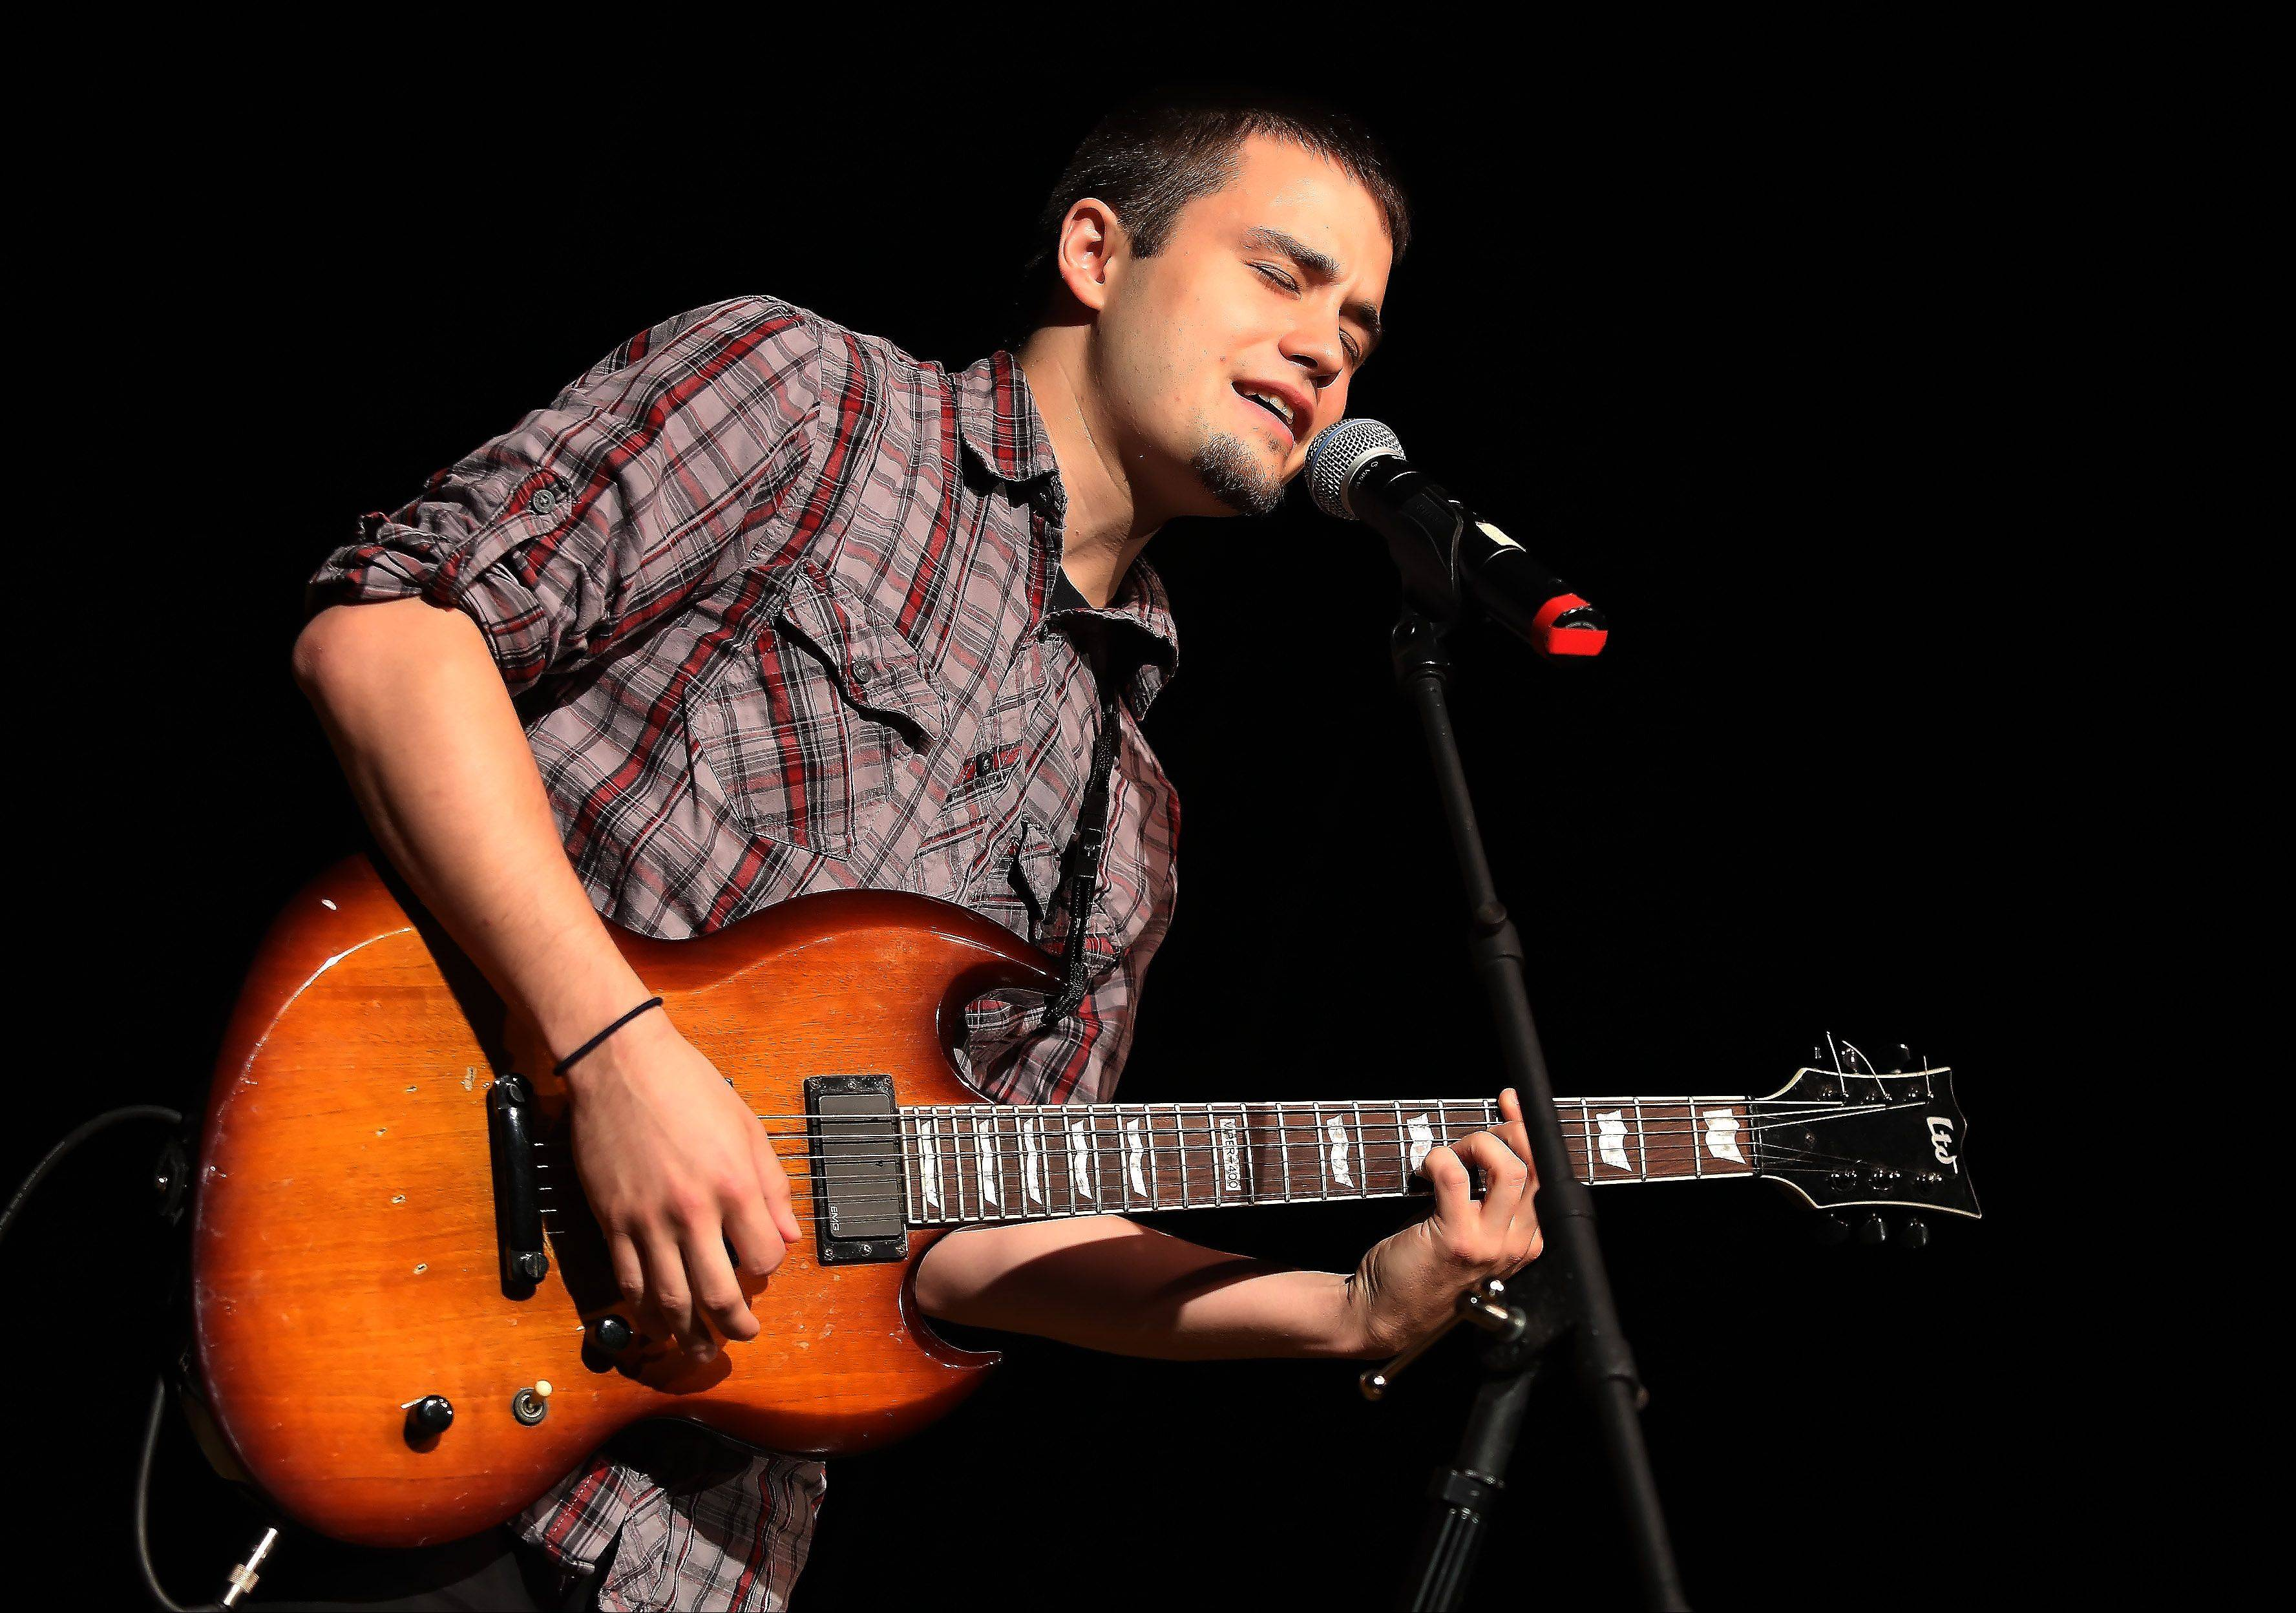 Ryan Cooper of Schaumburg plays guitar and sings during Suburban Chicago's Got Talent competition Sunday night at the Metropolis Performing Arts Centre in Arlington Heights. The summer long talent contest is presented by the Daily Herald and sponsored by the Arlington Heights Chamber of Commerce.